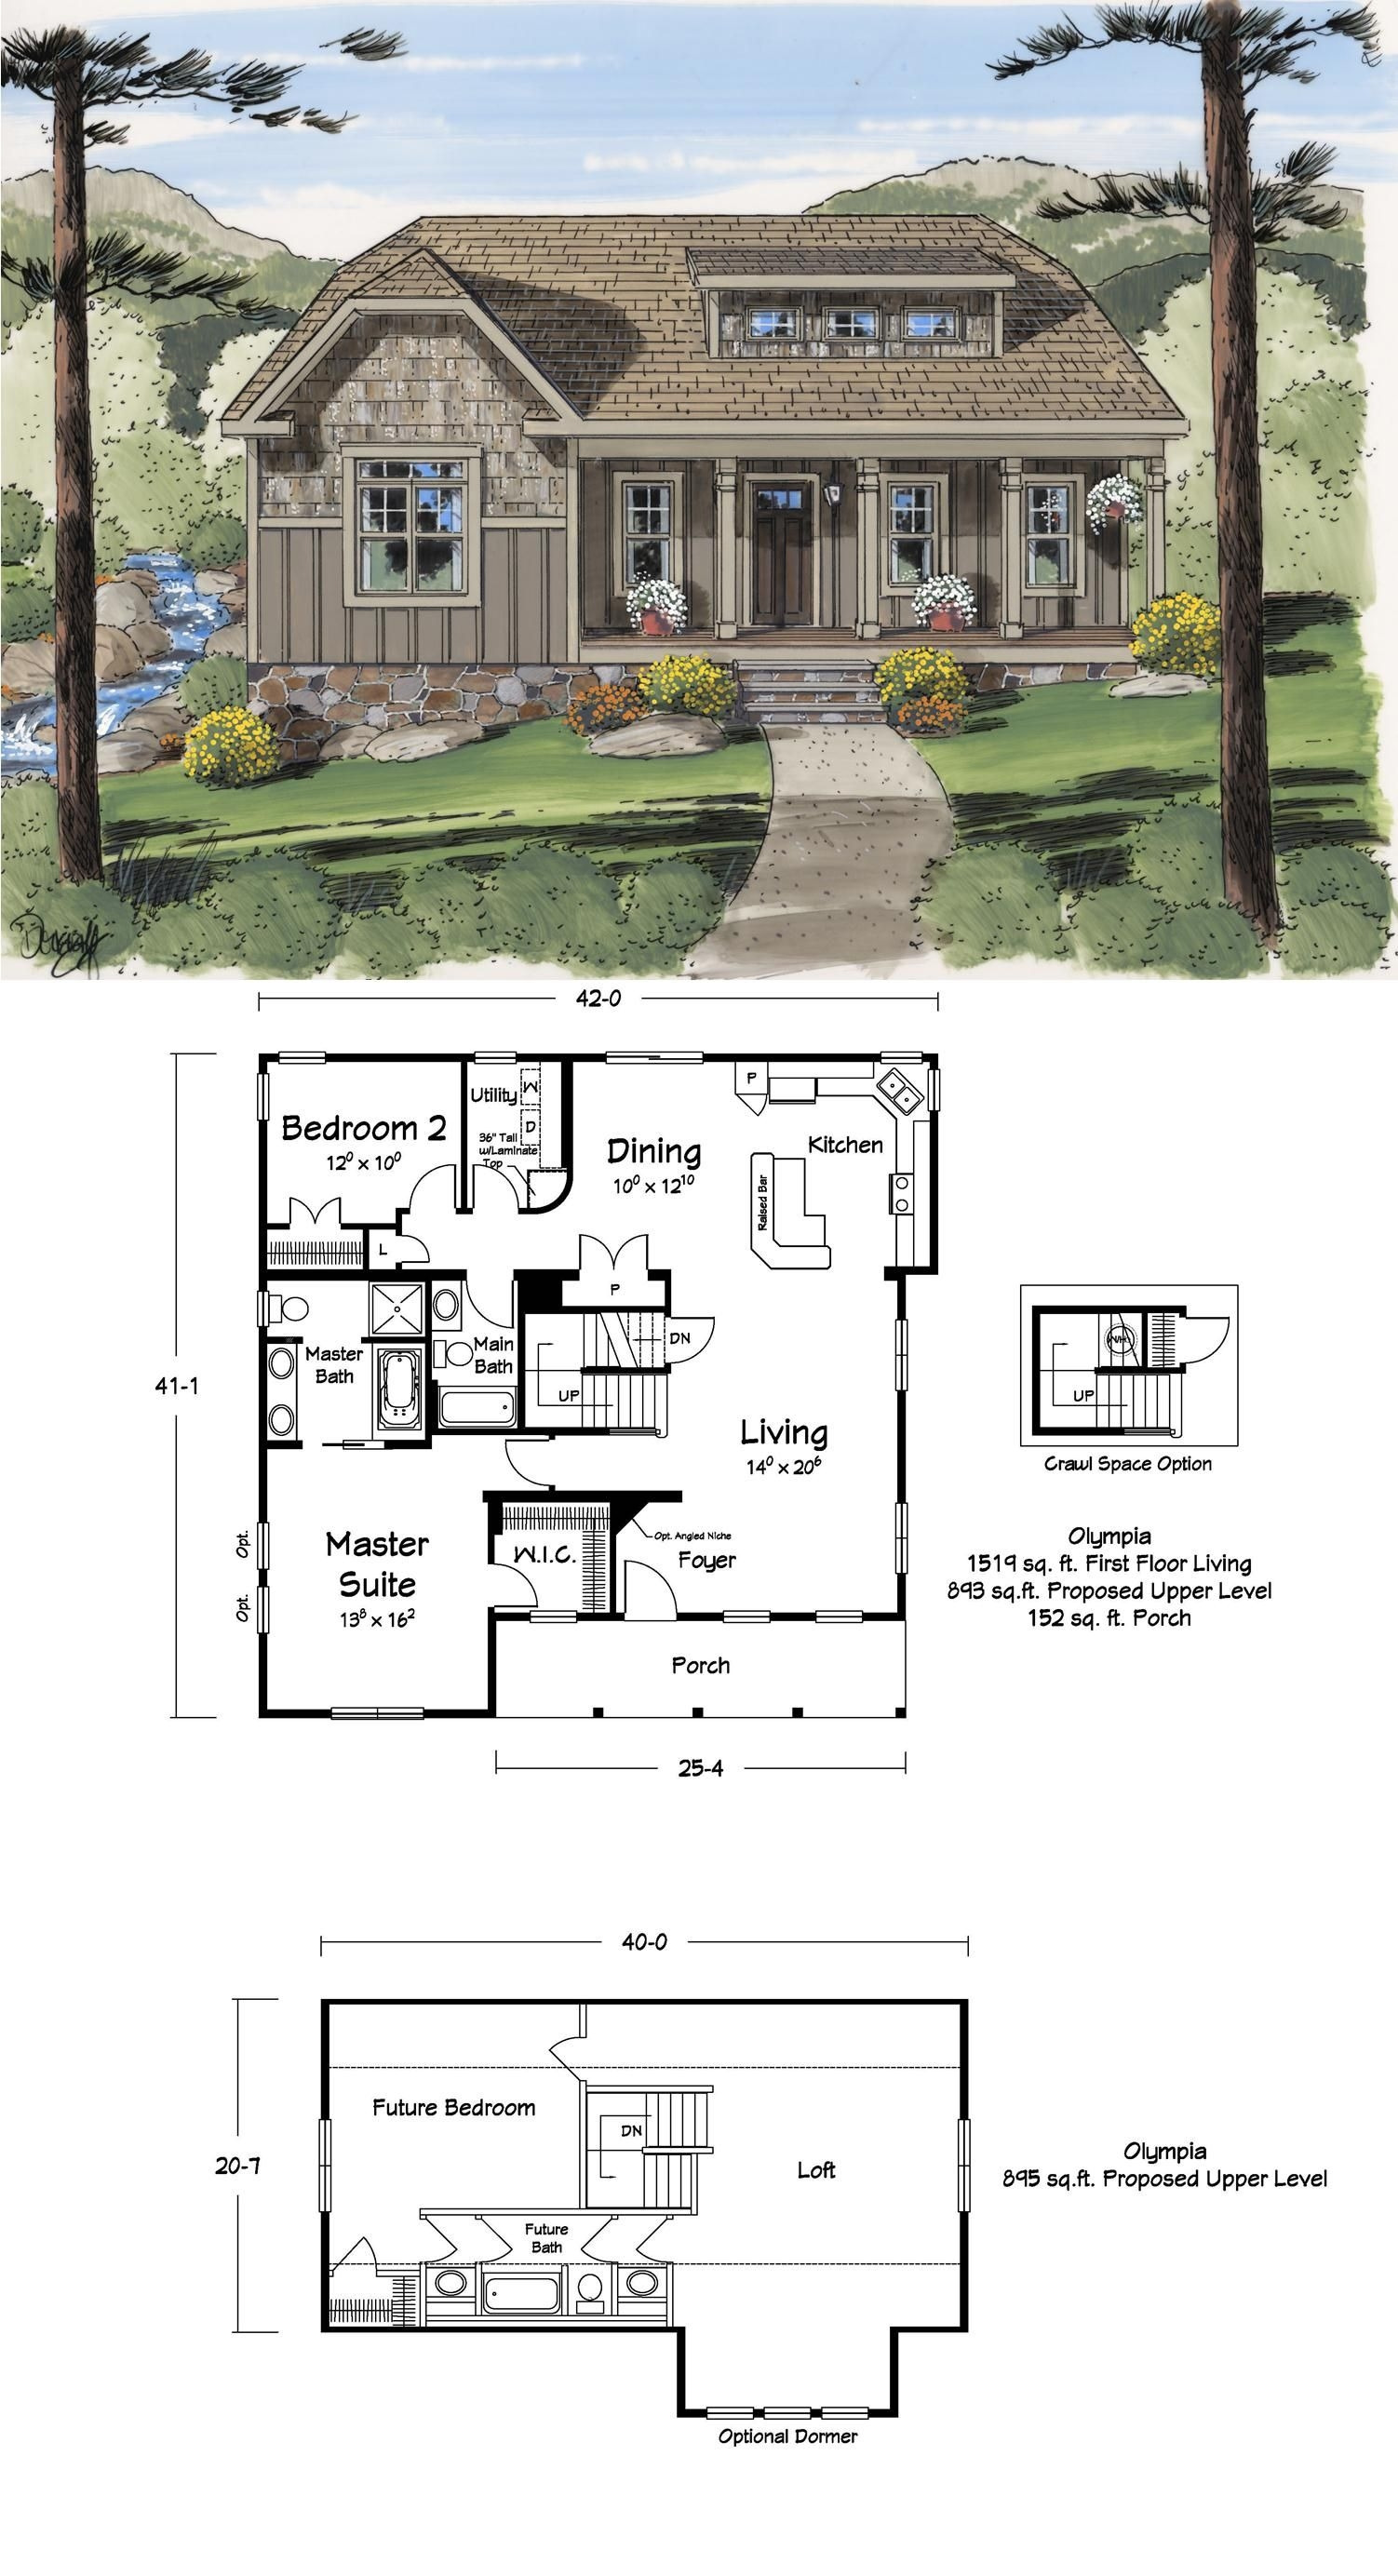 rustic mountain house plans with walkout basement fresh floor plan house of rustic mountain house plans with walkout basement